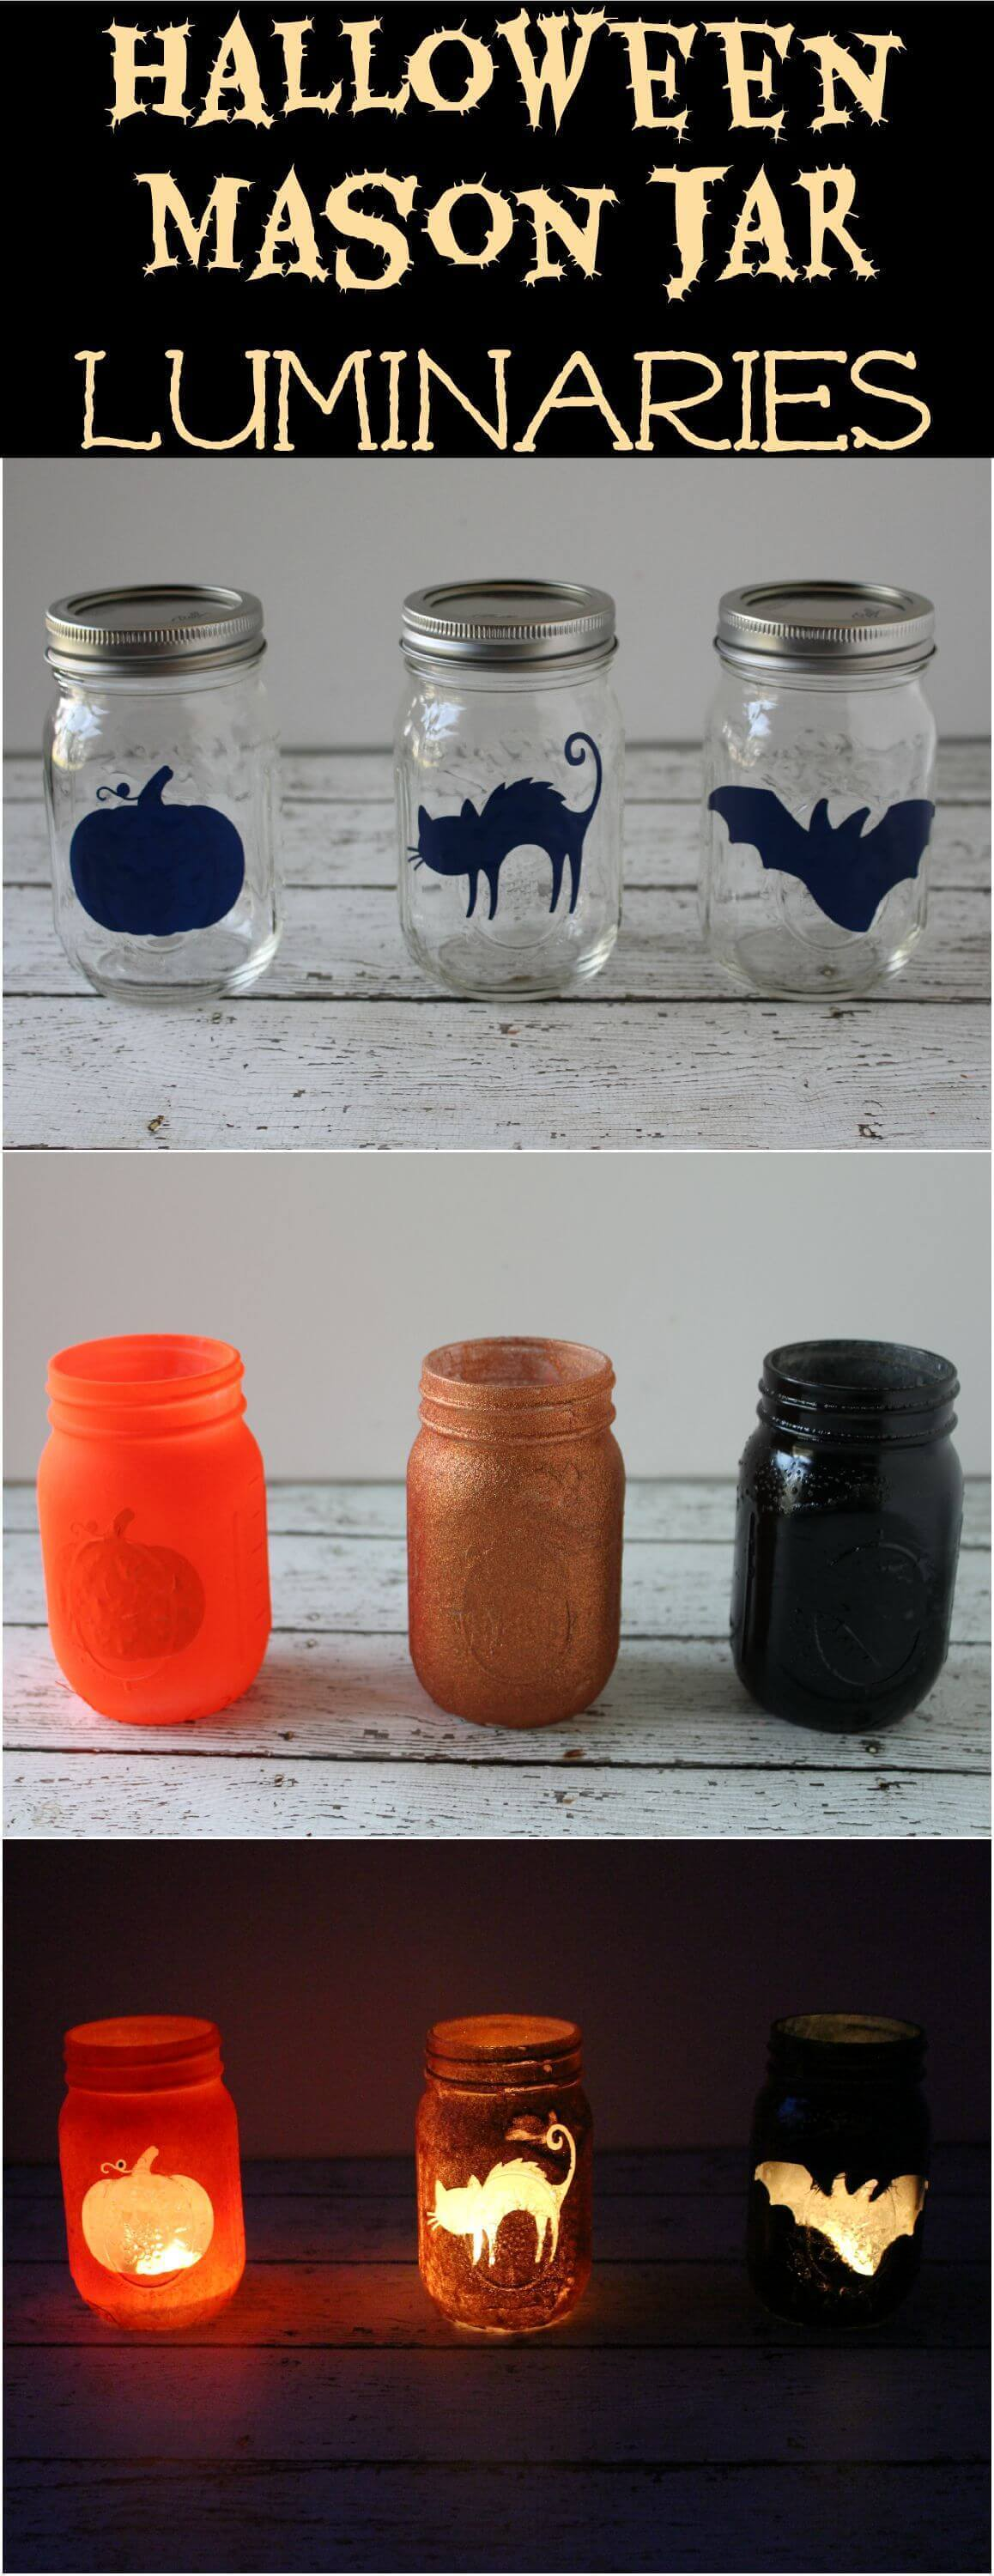 DIY Mason Jar Halloween Crafts: Fun and Fancy Mason Jar Halloween Craft